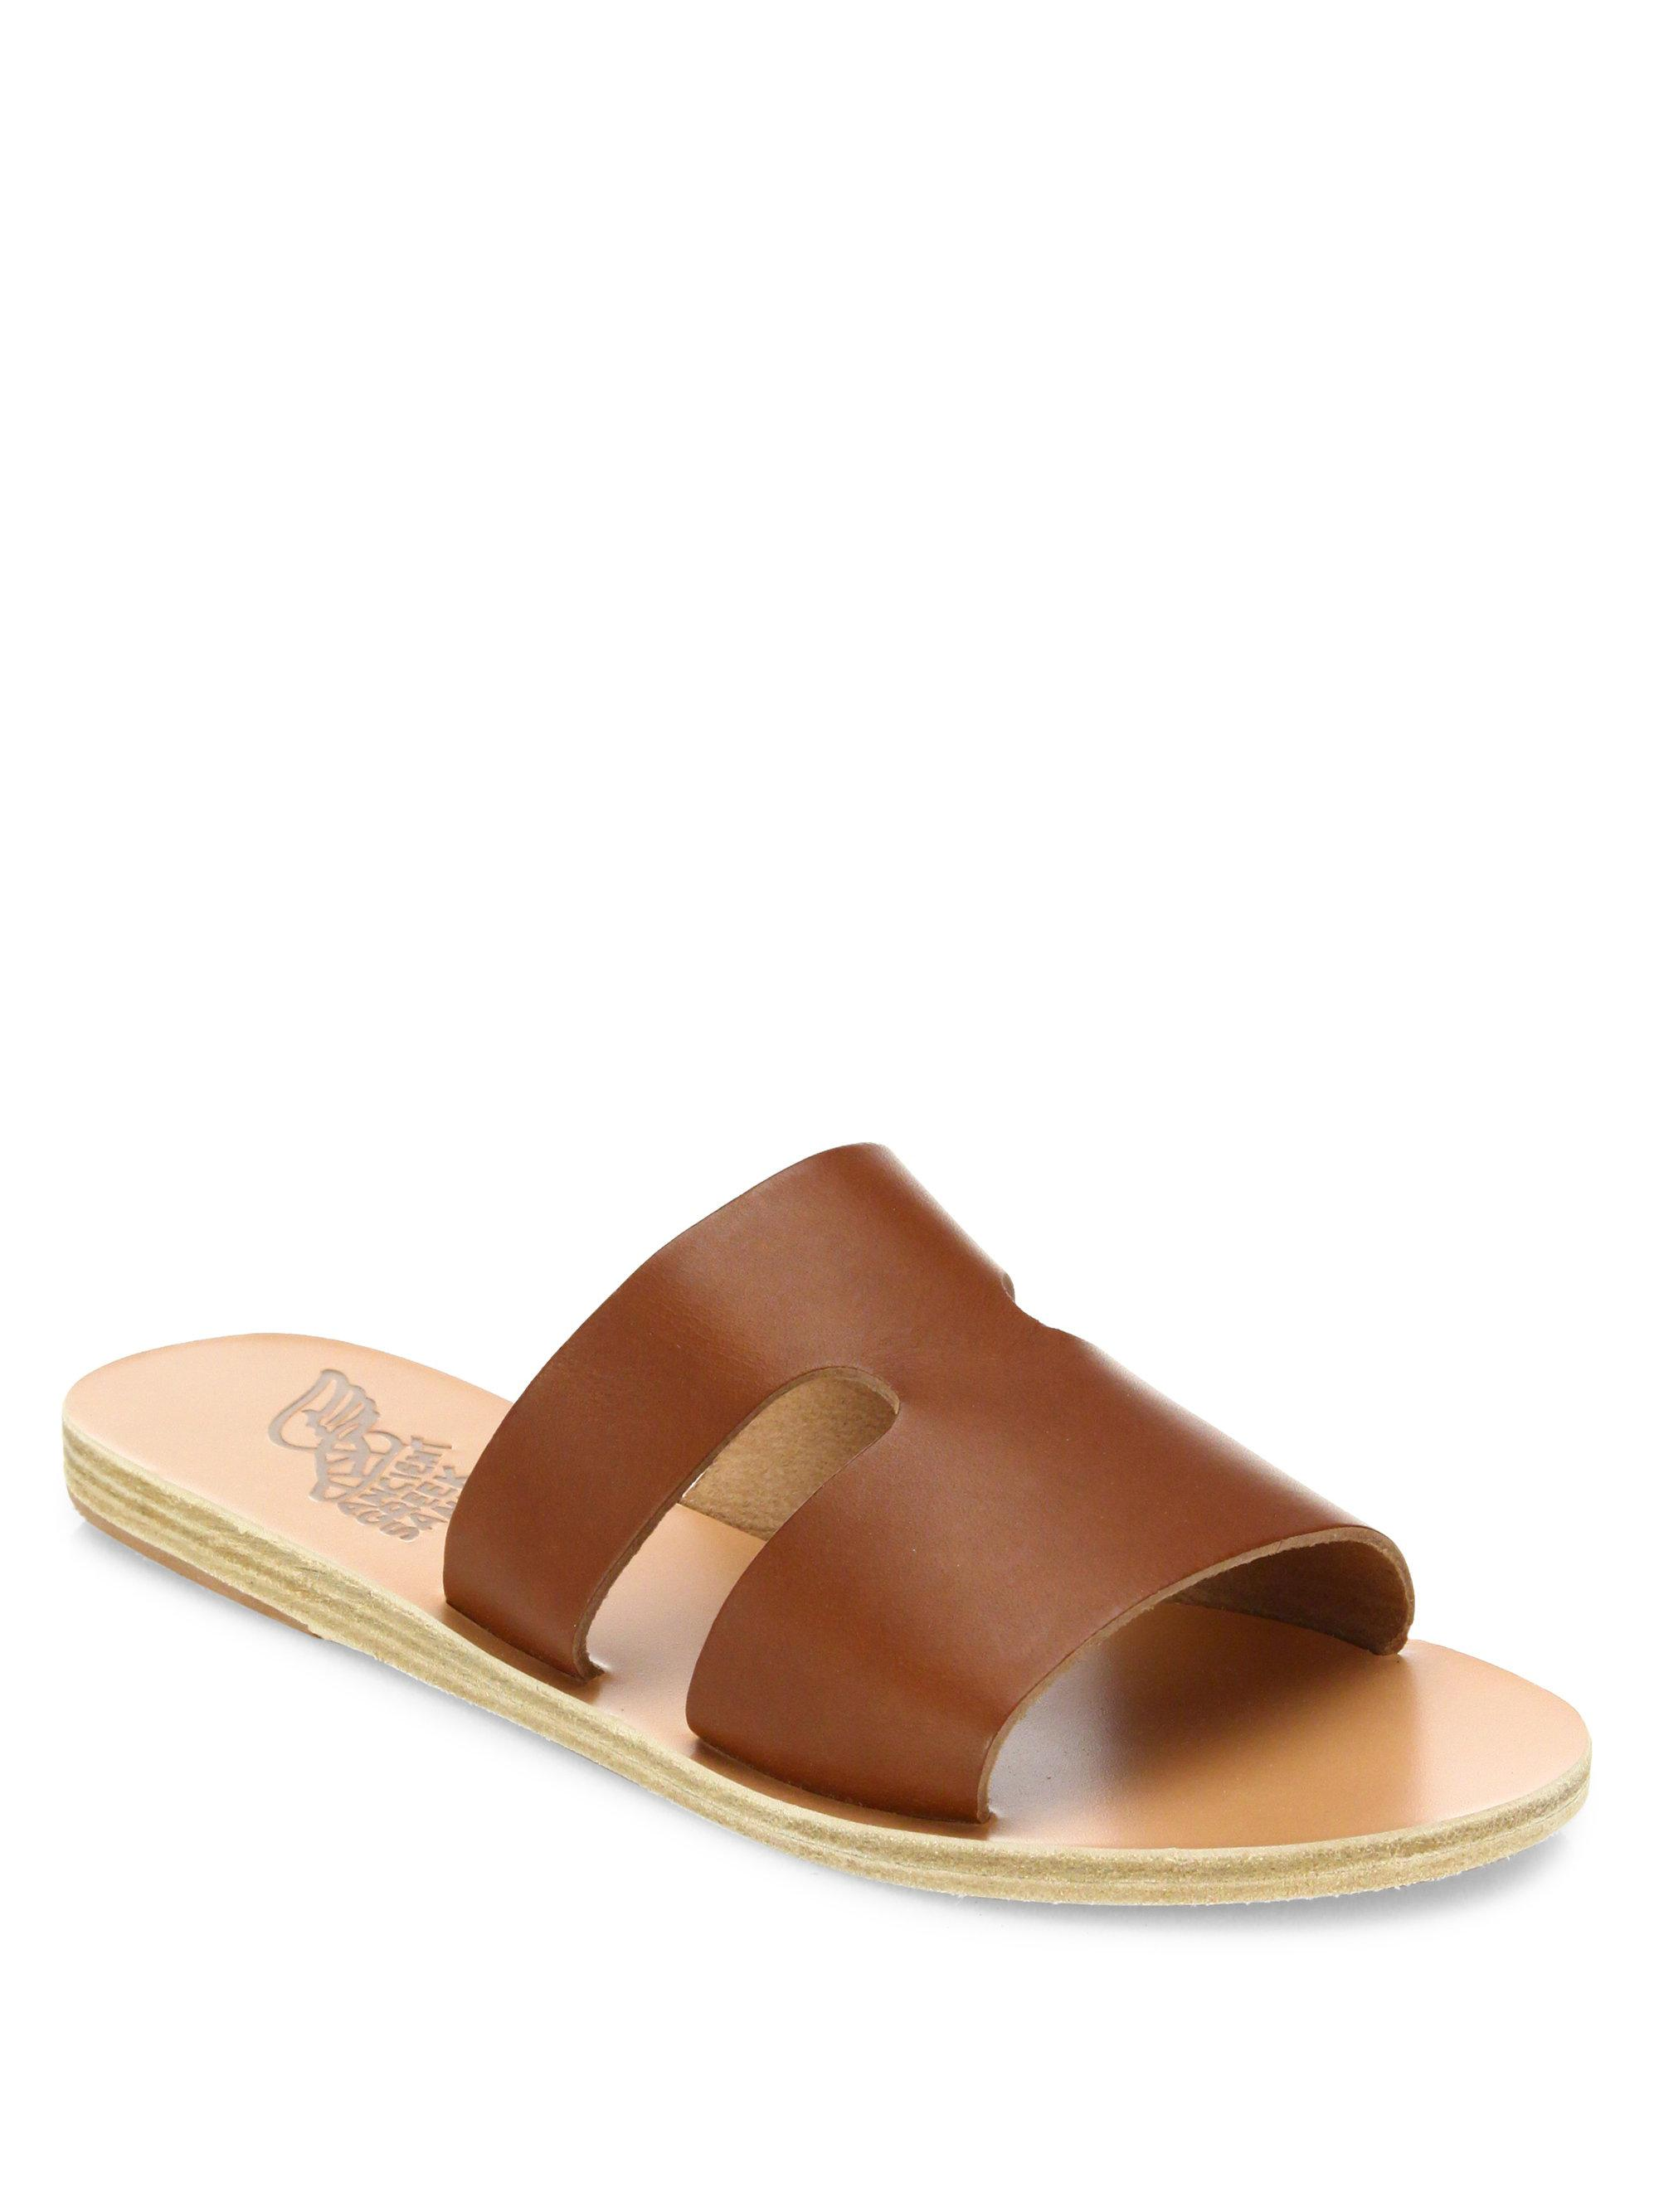 Apteros Woven Raffia And Leather Slides - Brown Ancient Greek Sandals XkrHs7